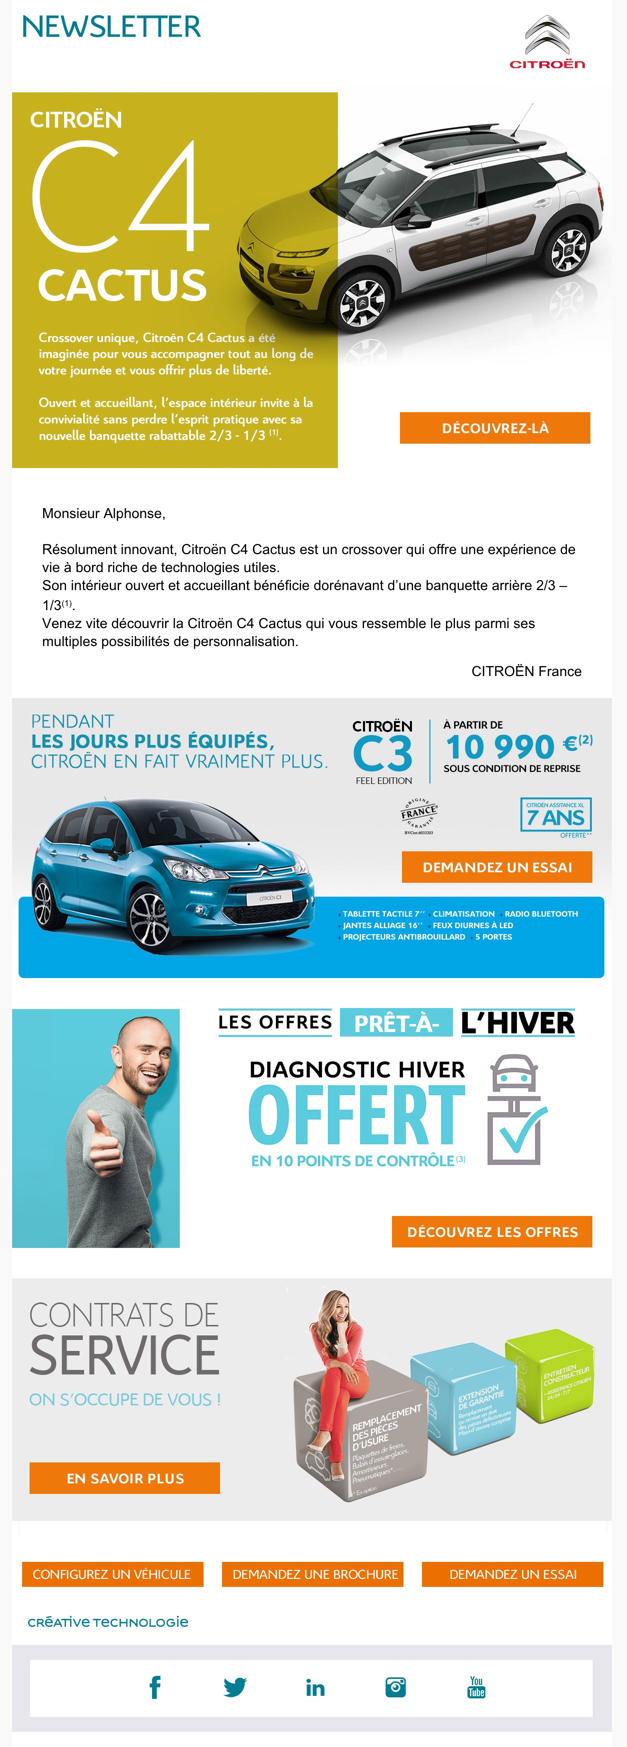 newsletter citroen du 18 novembre 2015